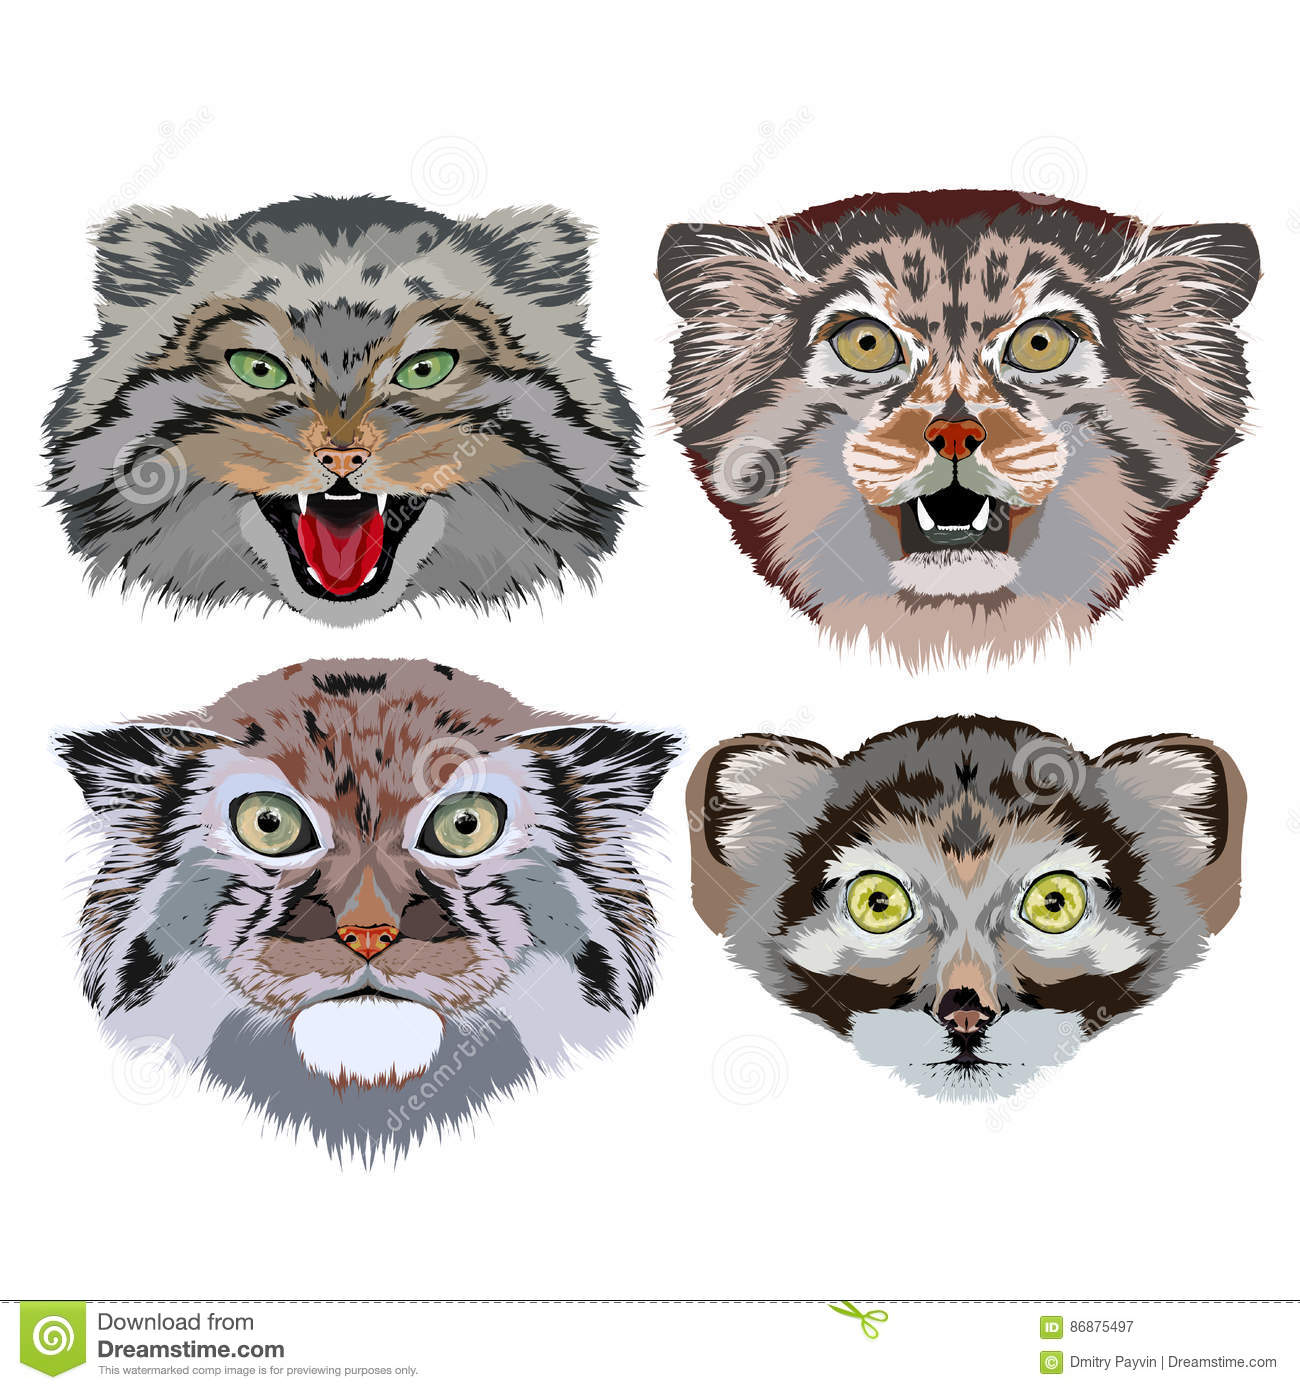 Pallas's Cat clipart #13, Download drawings